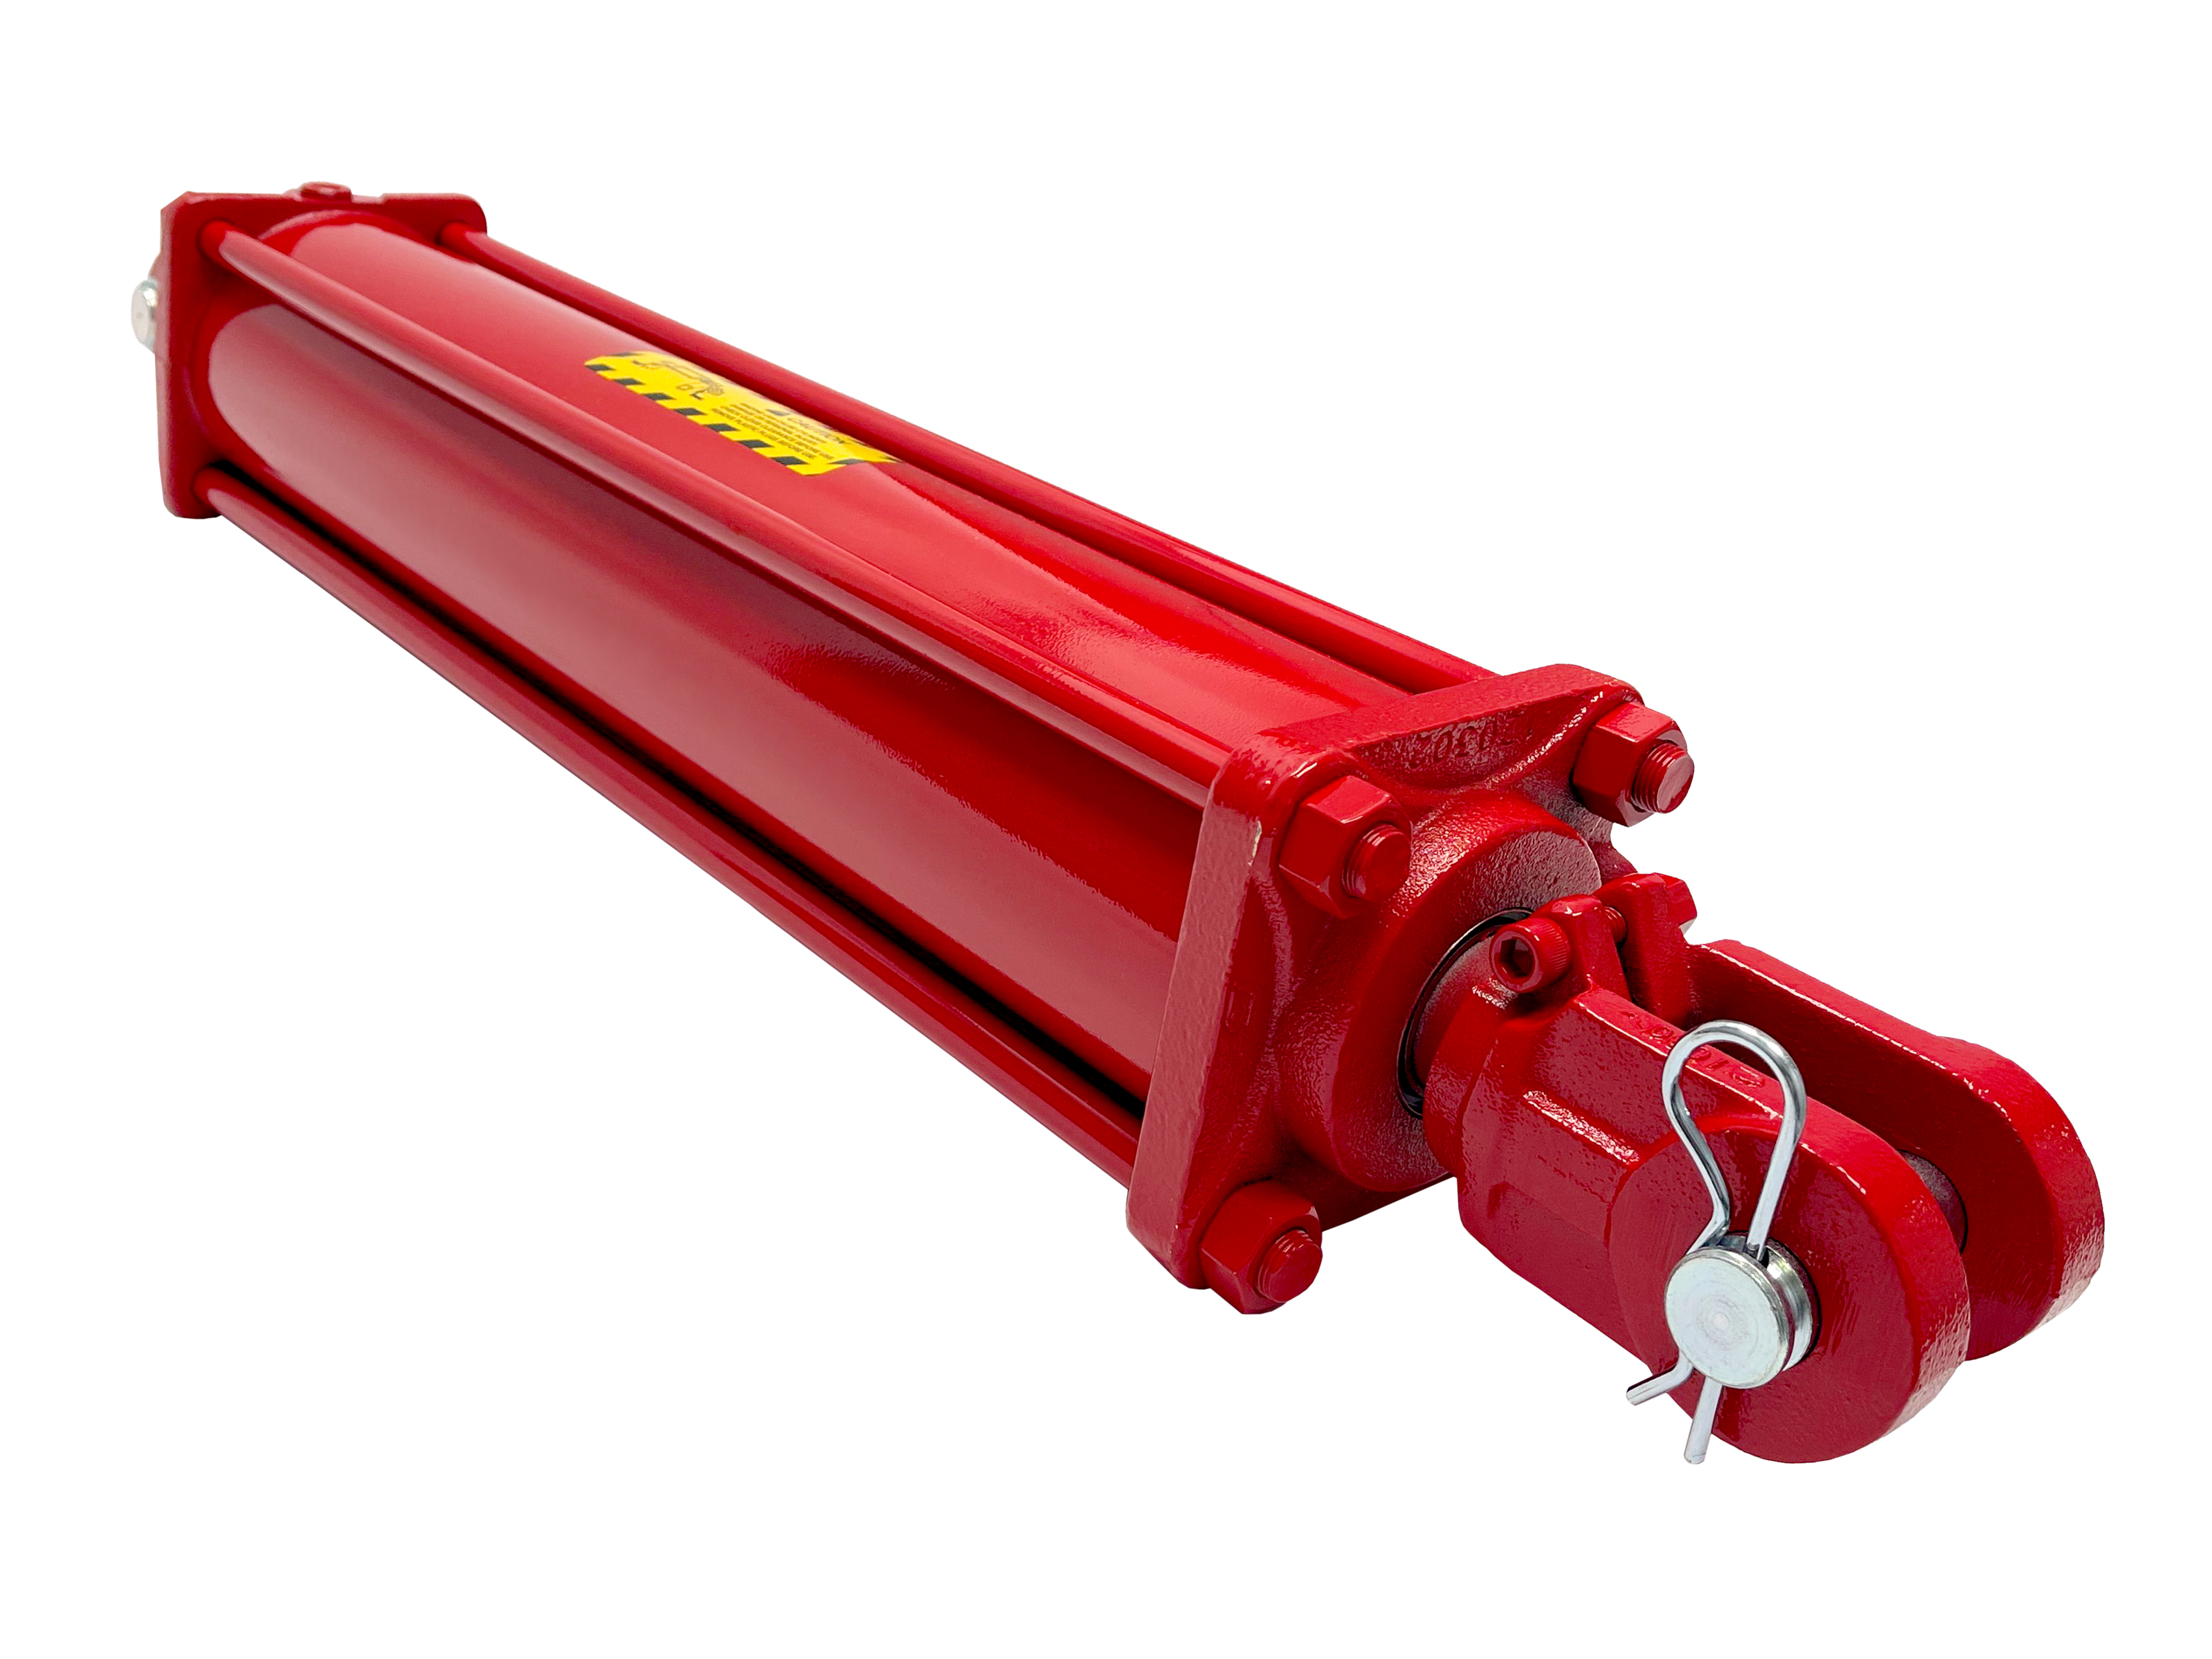 4 bore x 20 stroke CROSS hydraulic cylinder, tie rod double acting cylinder DB series | CROSS MANUFACTURING